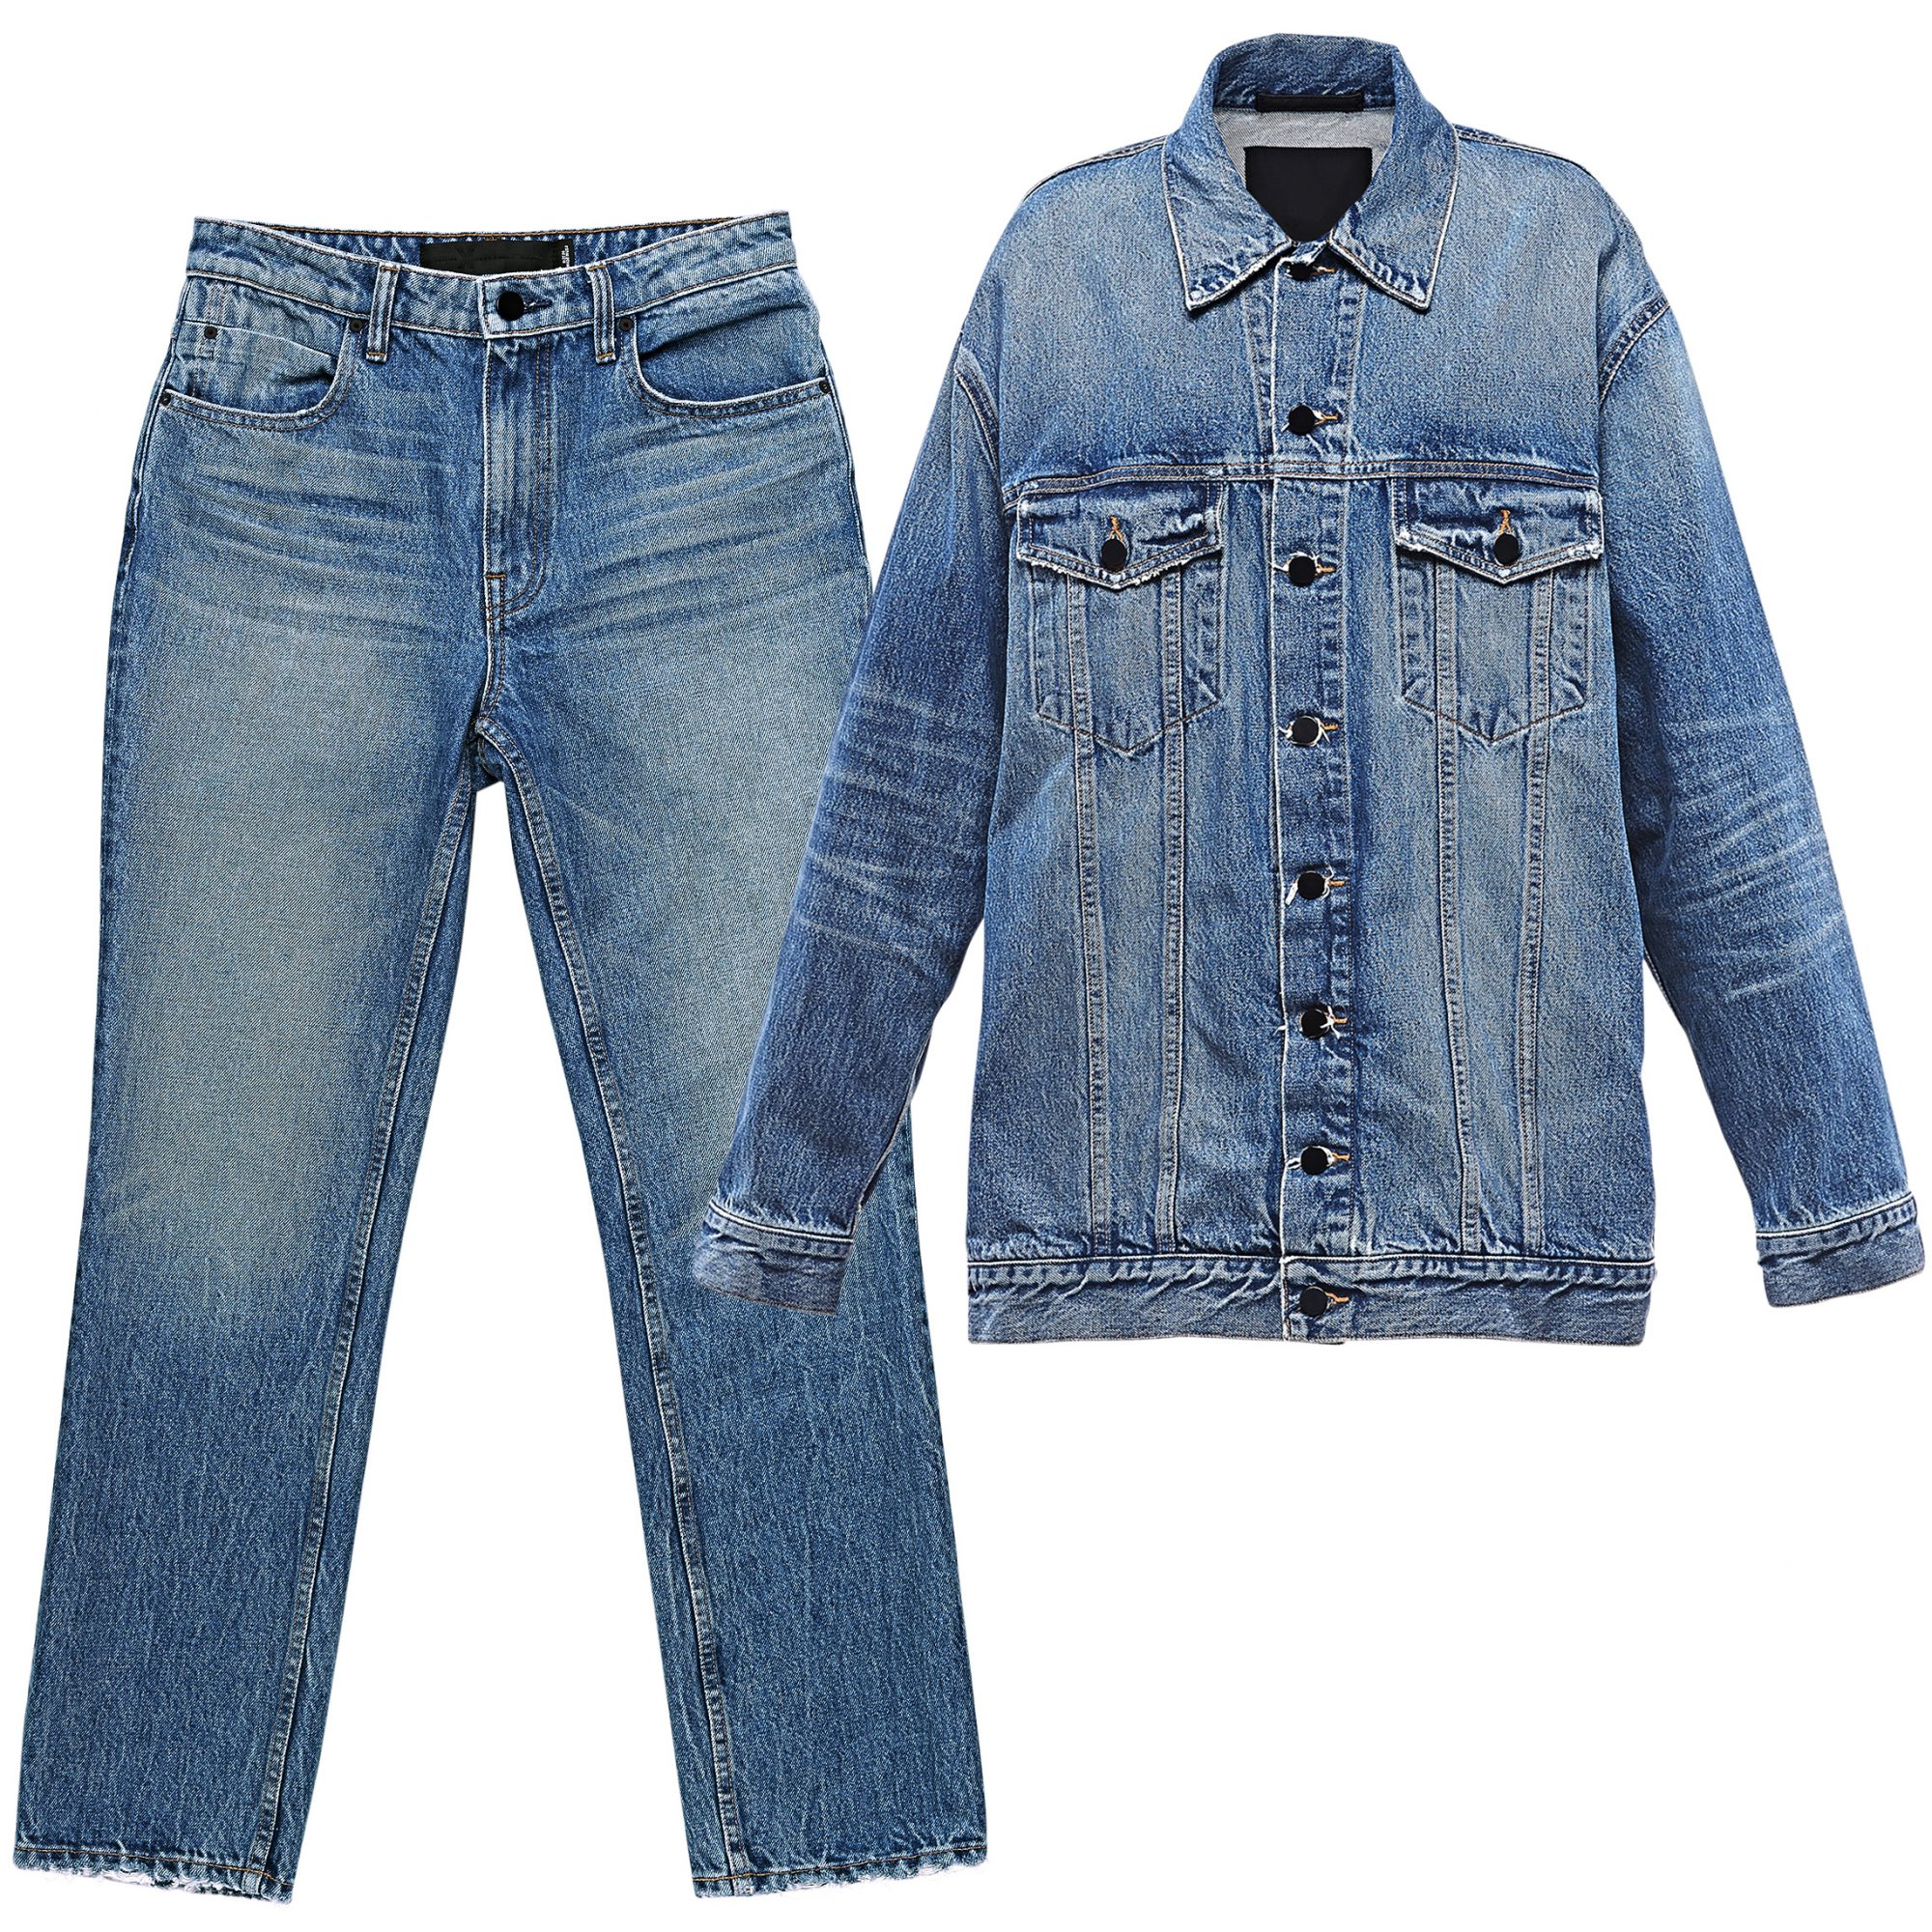 """<strong>Denim obsessions</strong><br/>""""></div></div></div><div class="""